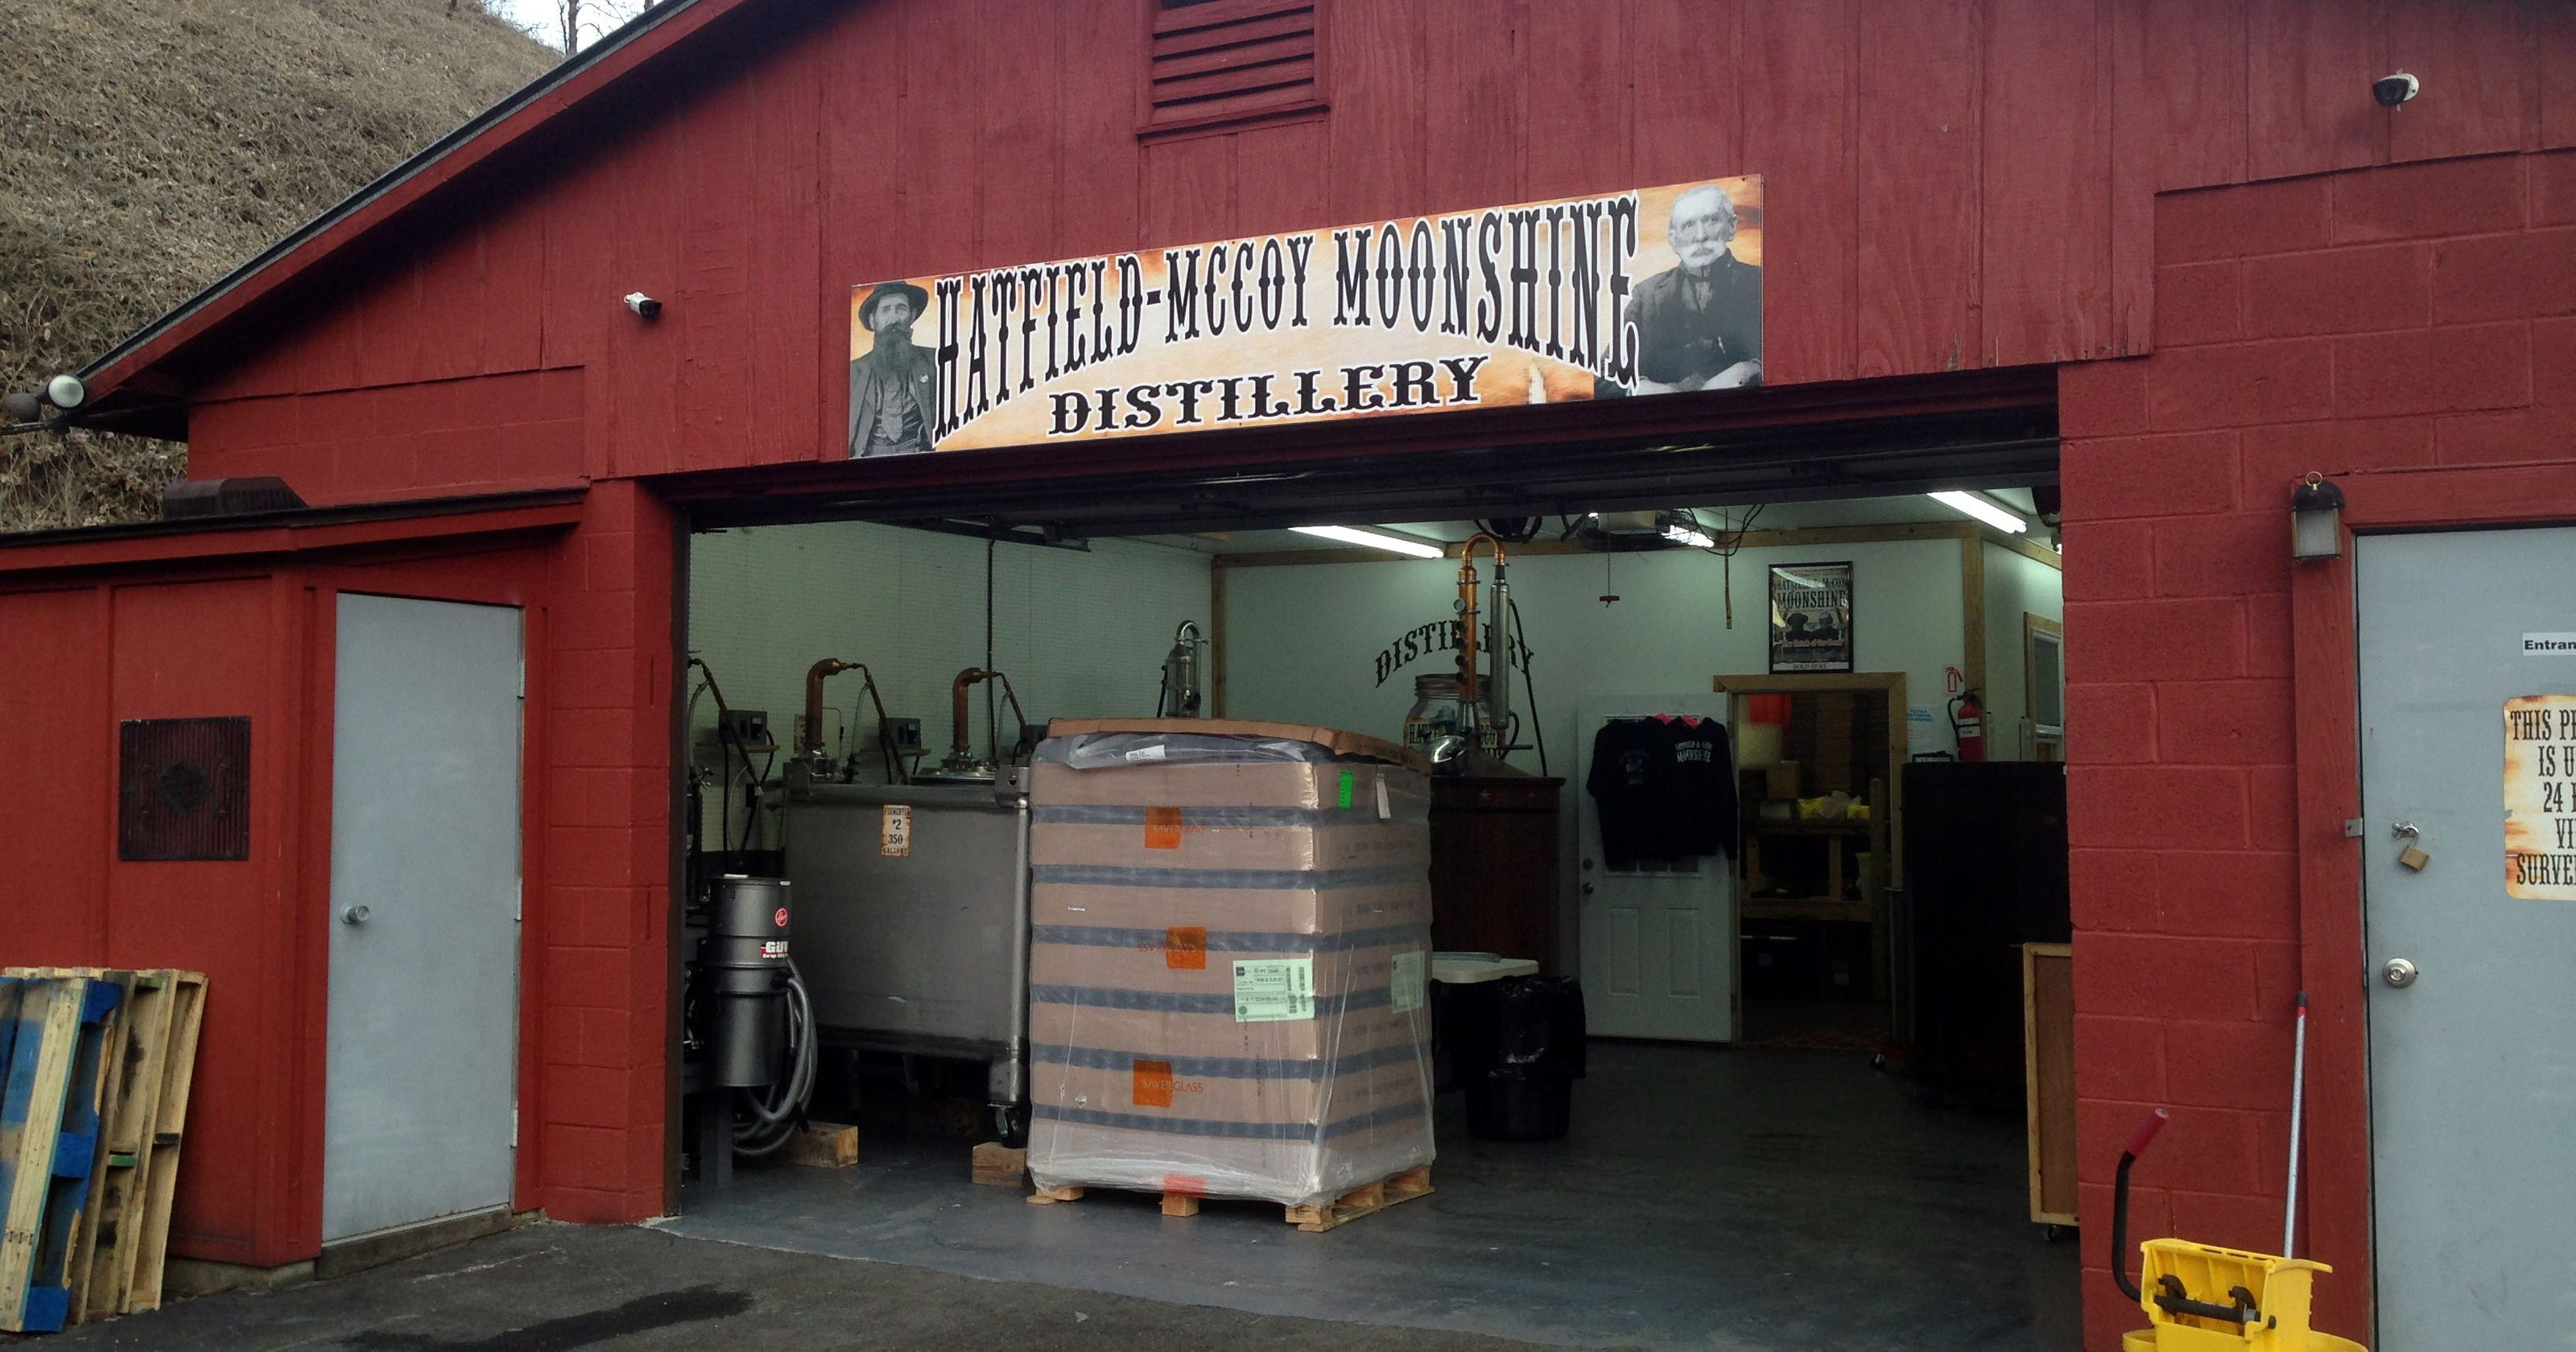 The distillery was formed in 2015 by descendants of the Hatfields with the support of descendants of the McCoys.